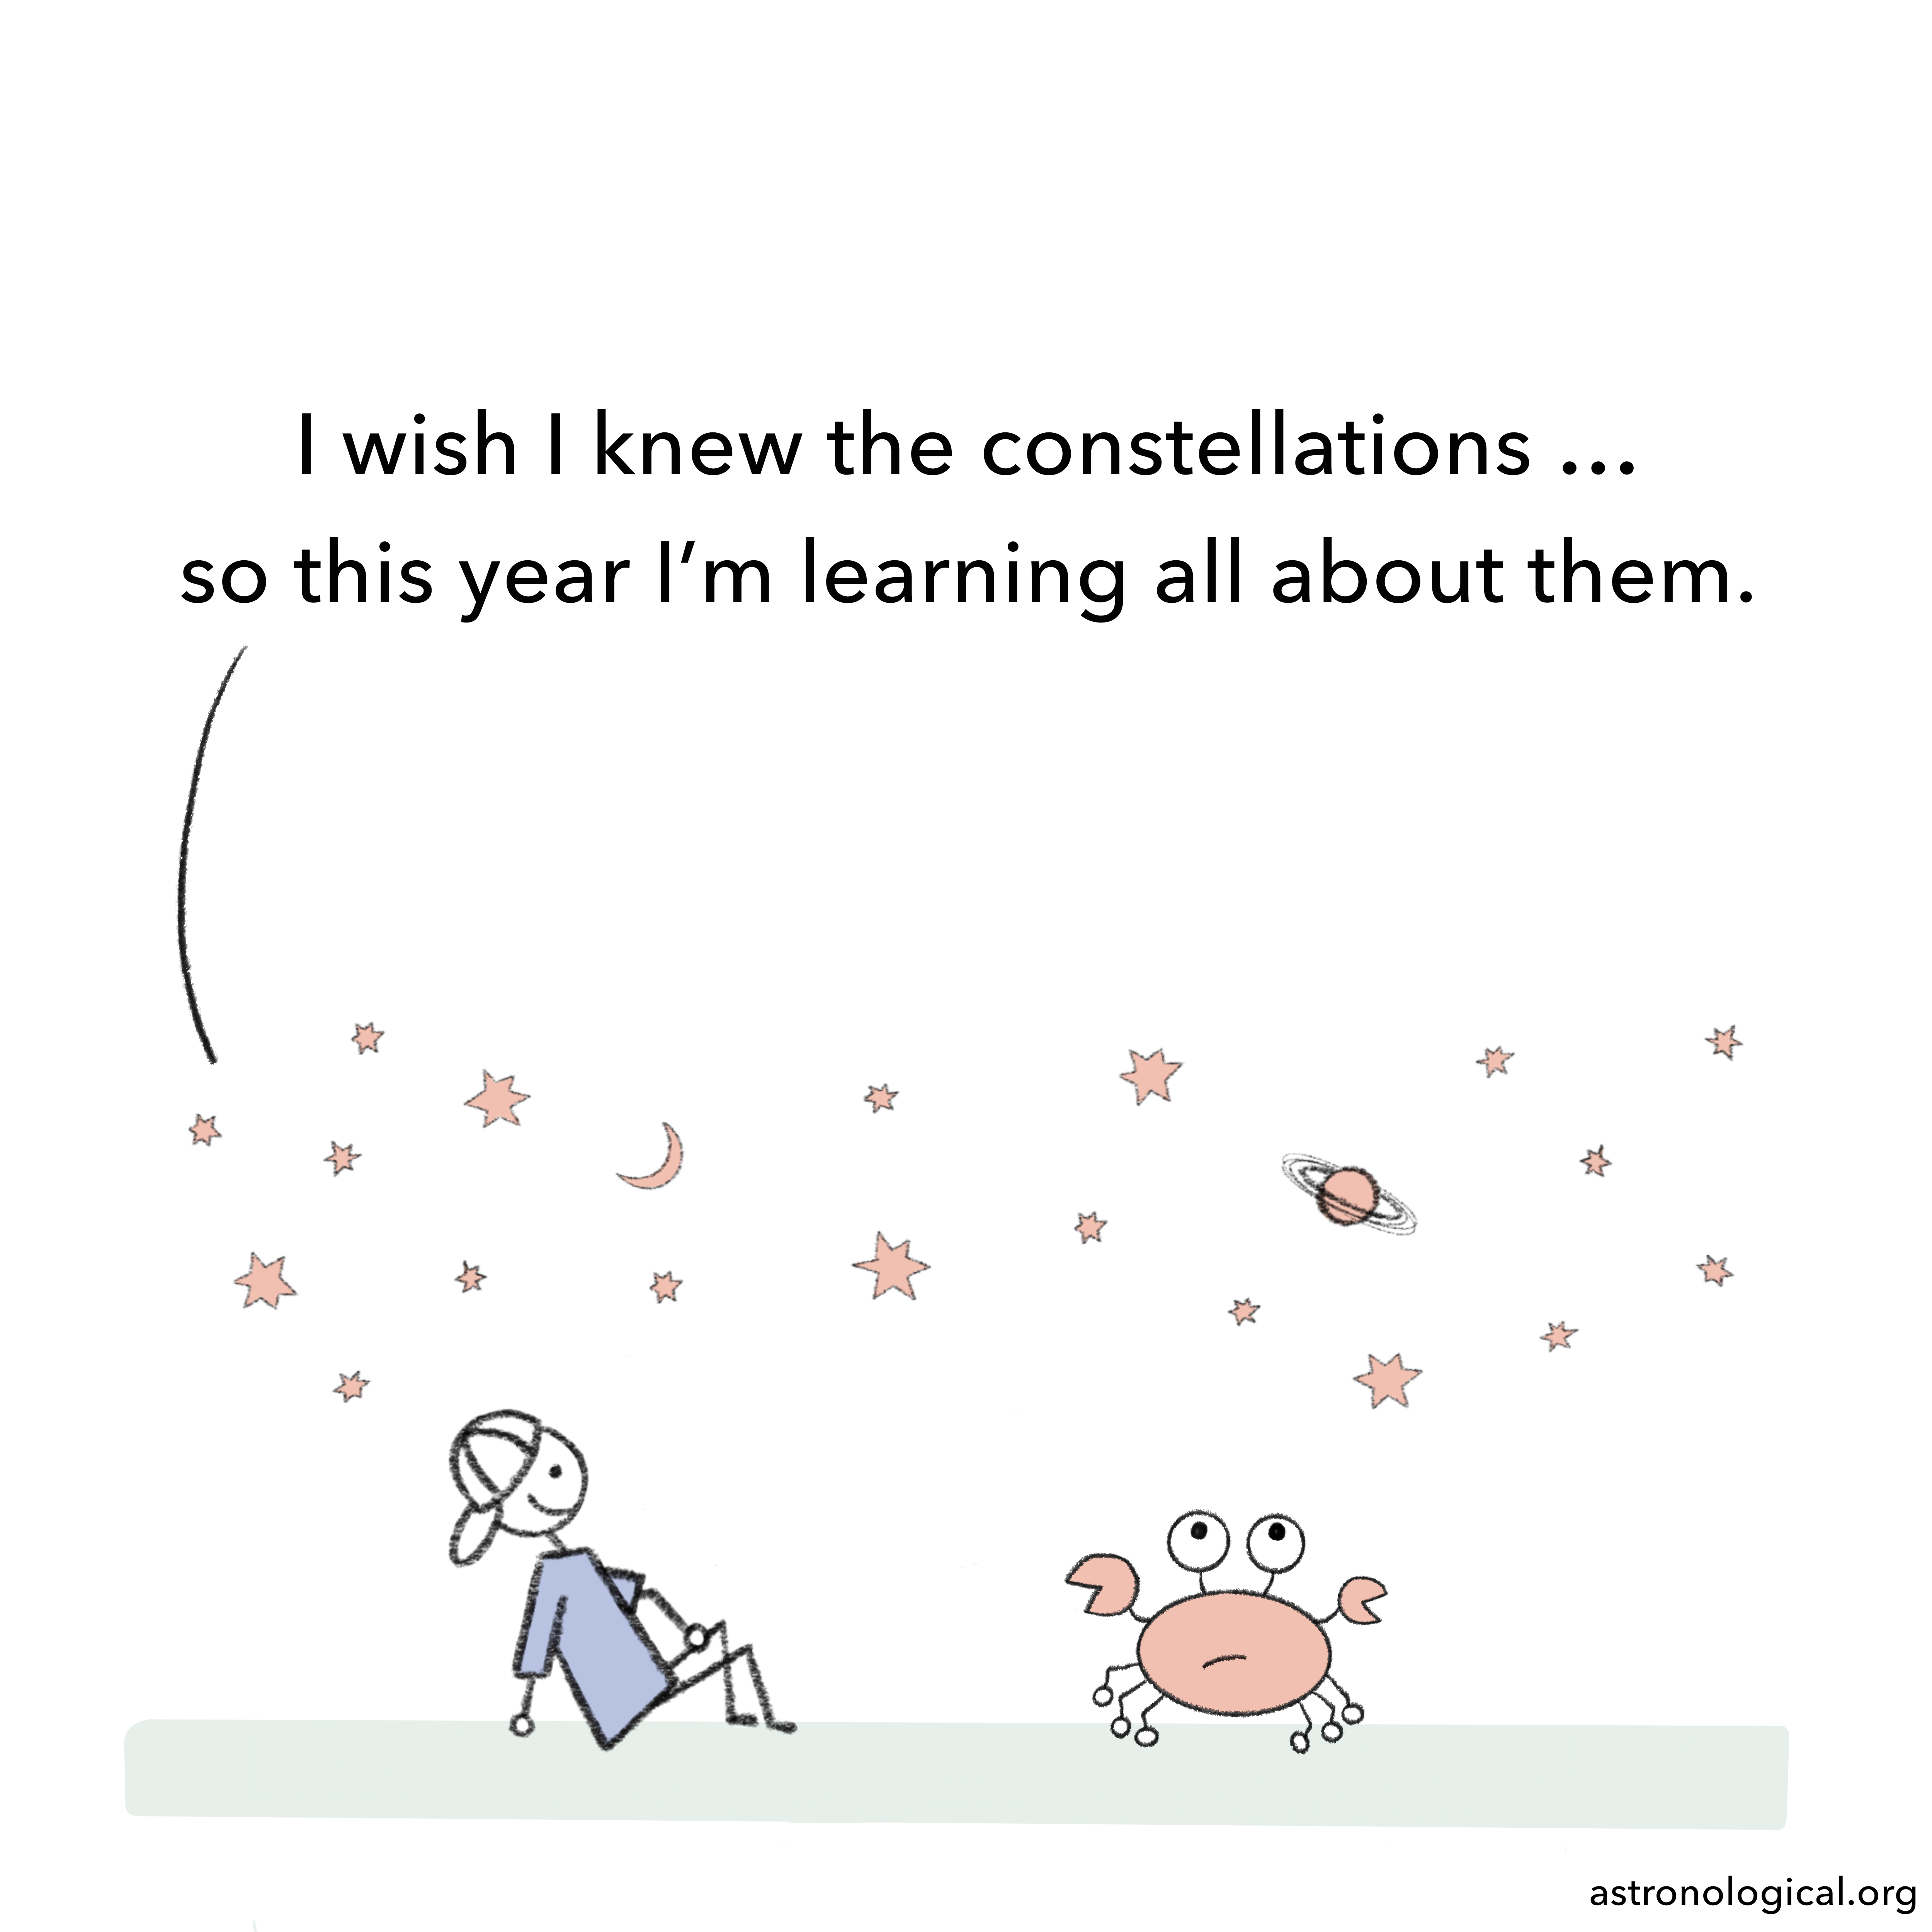 A stick figure guy and a crab are sitting looking at the stars. The guy says: I wish I knew the constellations, so this year I'm learning all about them.